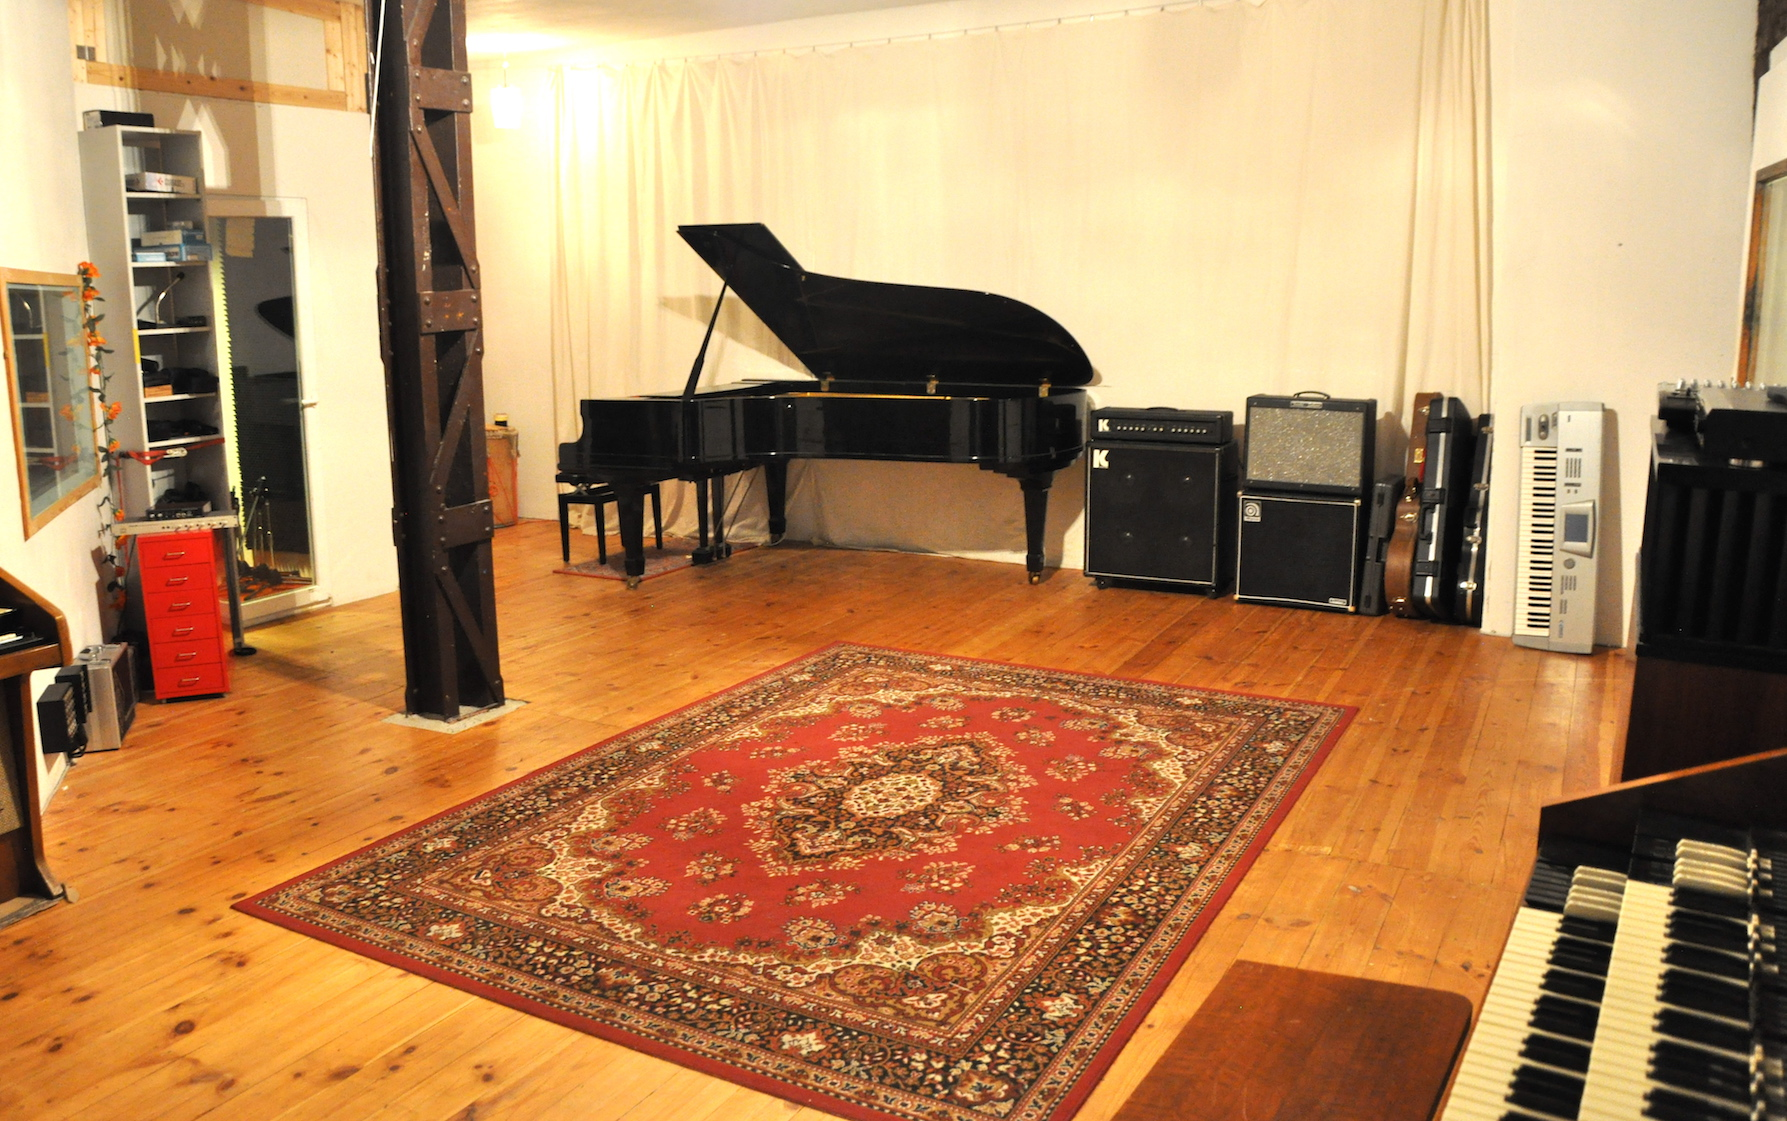 Recording studio carpet floor lets see carpet new design for Recording studio flooring